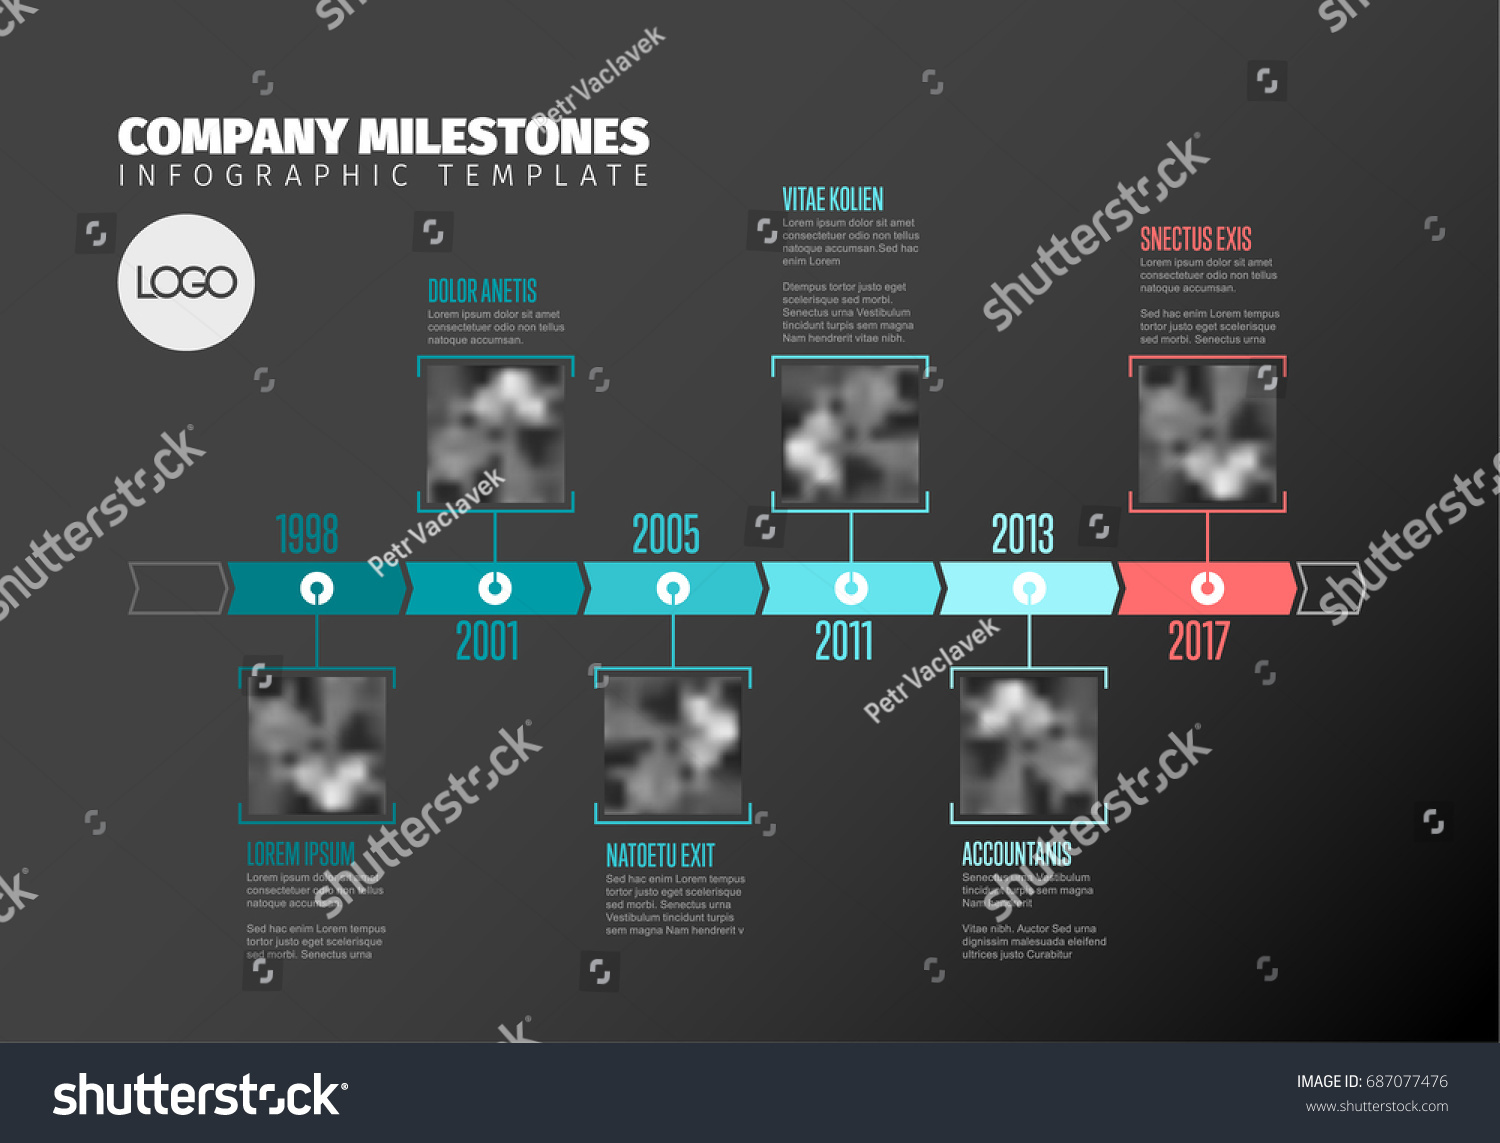 Top infographic animation